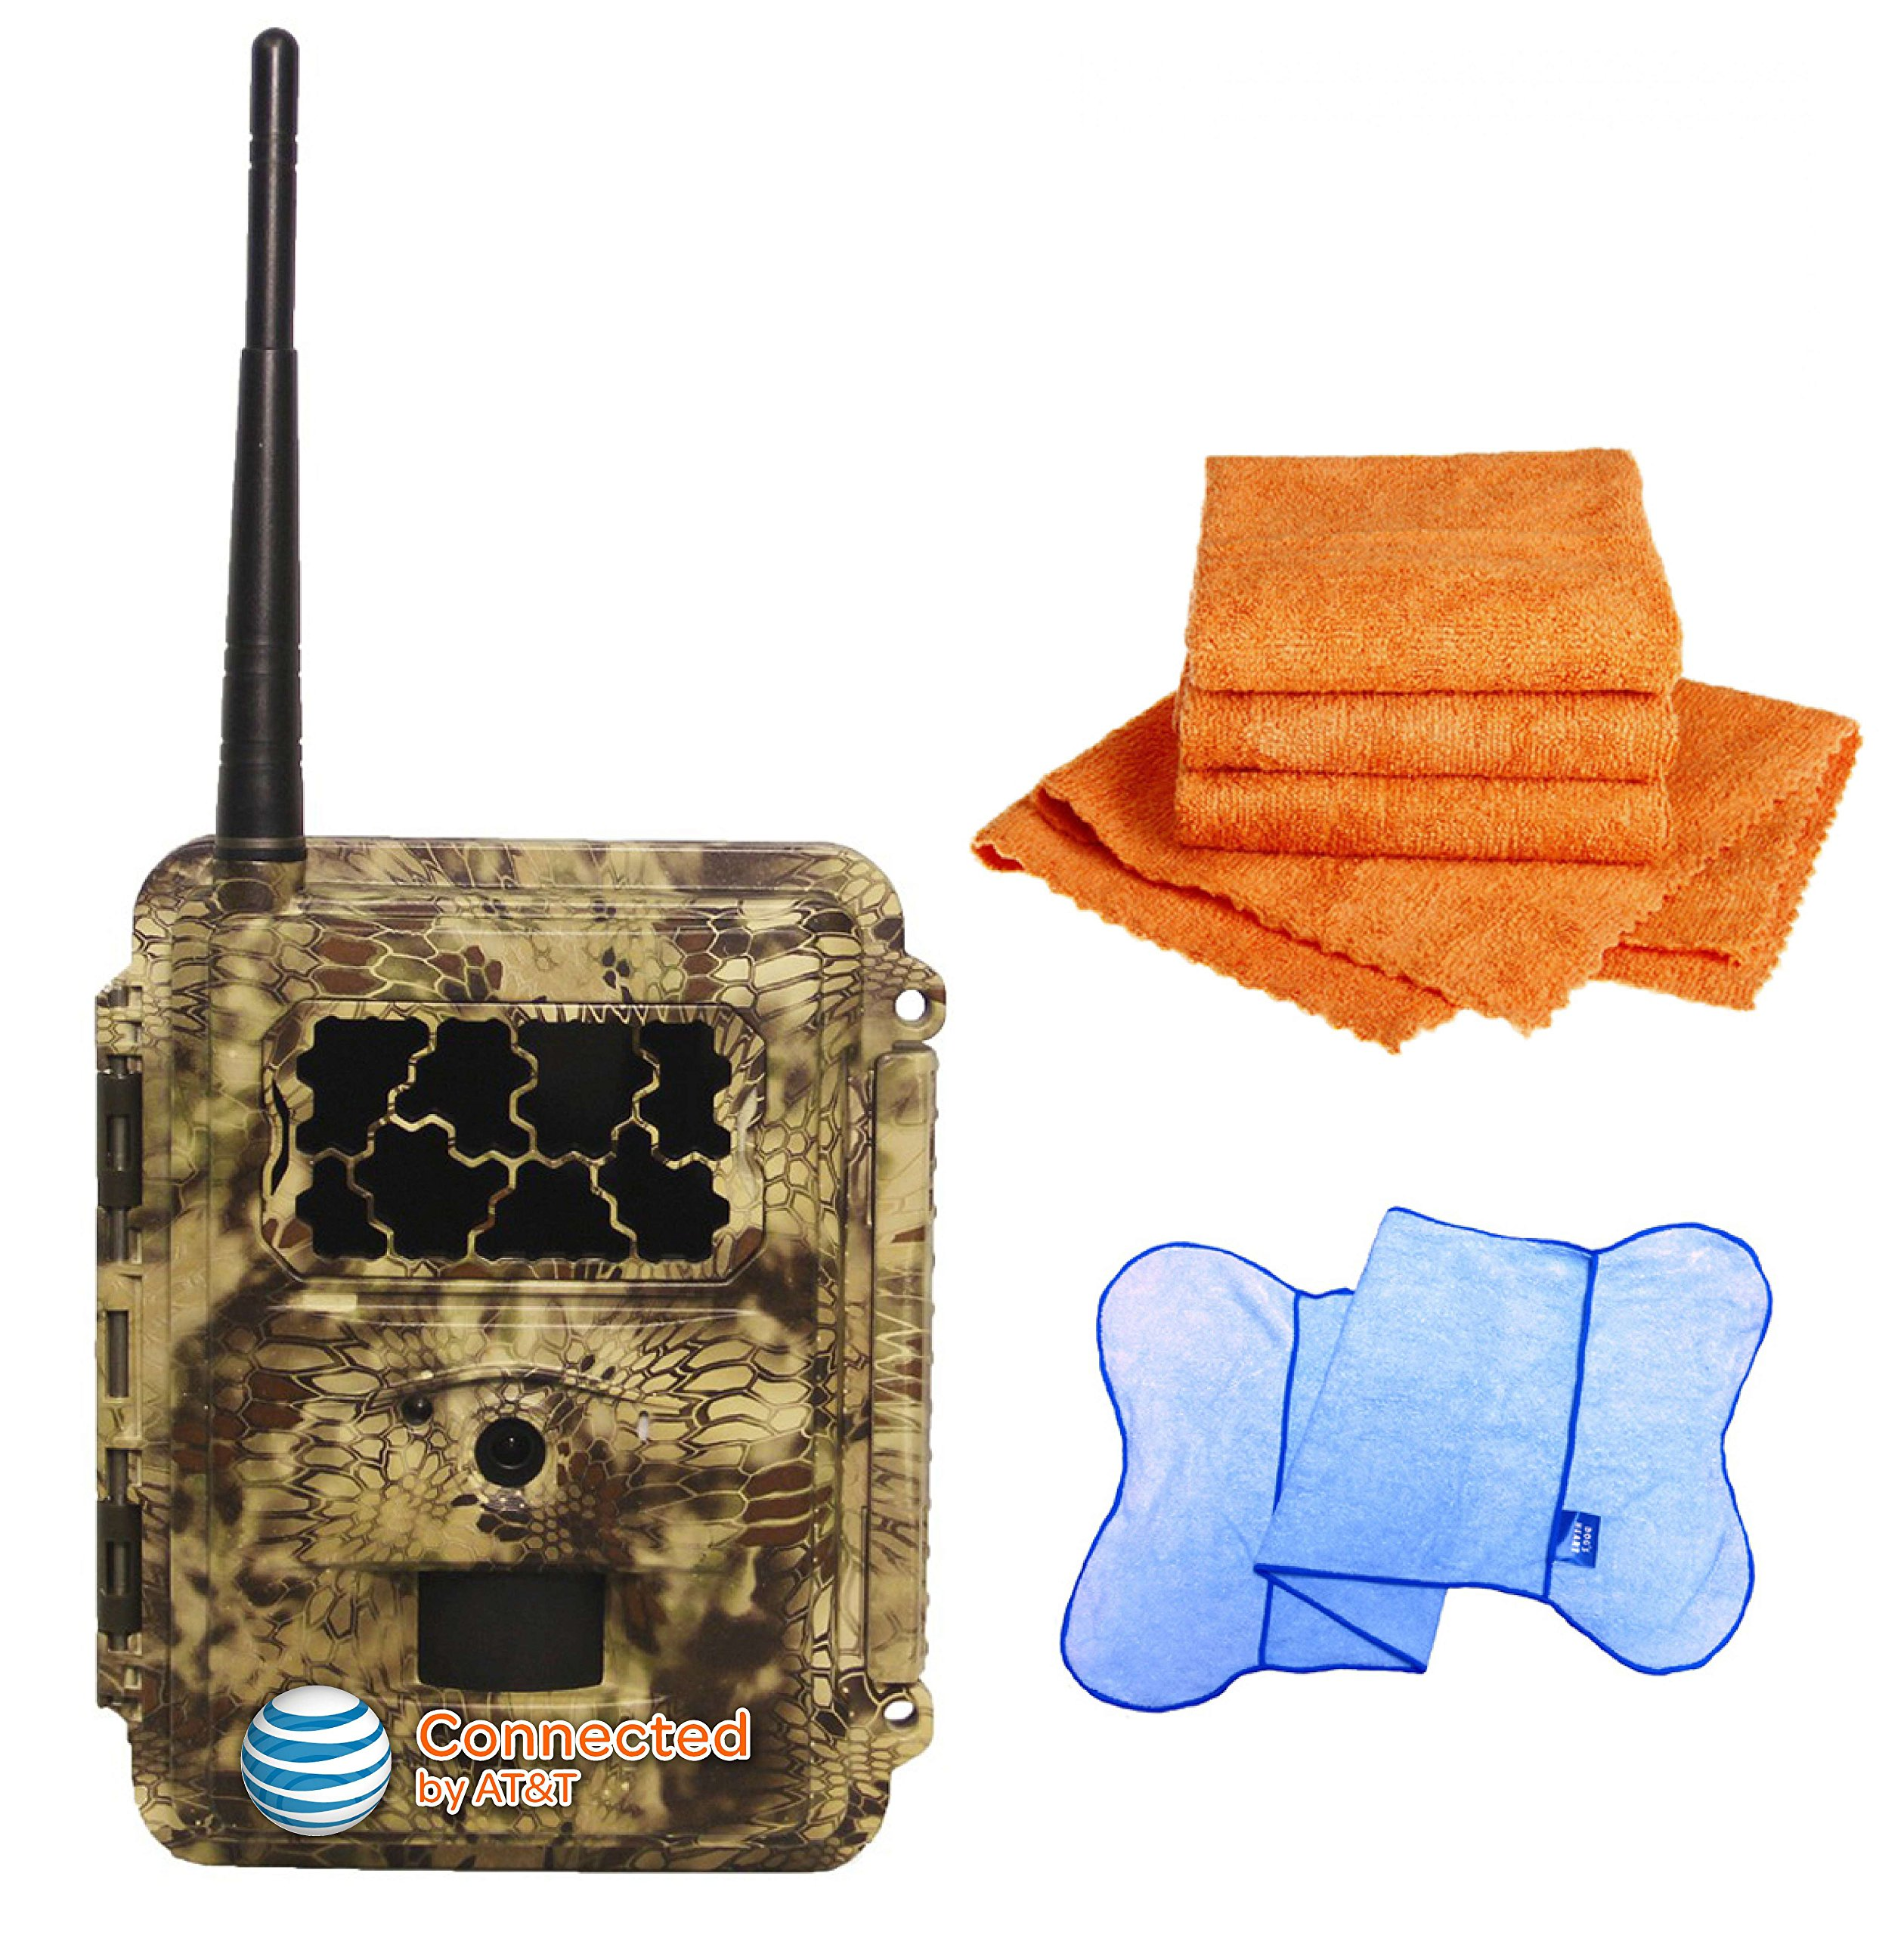 Spartan HD GoCam (AT&T Version, Model#GC-ATTxb, Blackout Infrared) 3G Wireless UTowel Bundle DEAL Bundled with UTowels Edgeless Microfiber Towels by Spartan (Image #1)